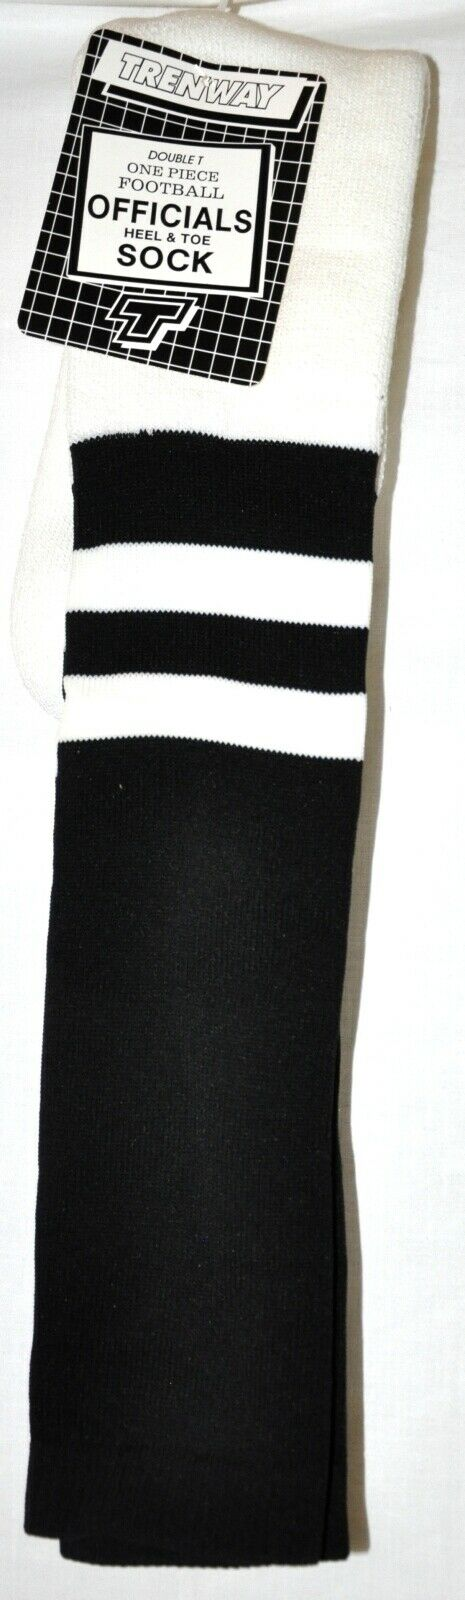 Football Official Referee Black /& White Knee High Socks Men/'s Size XL 13-15 NWT